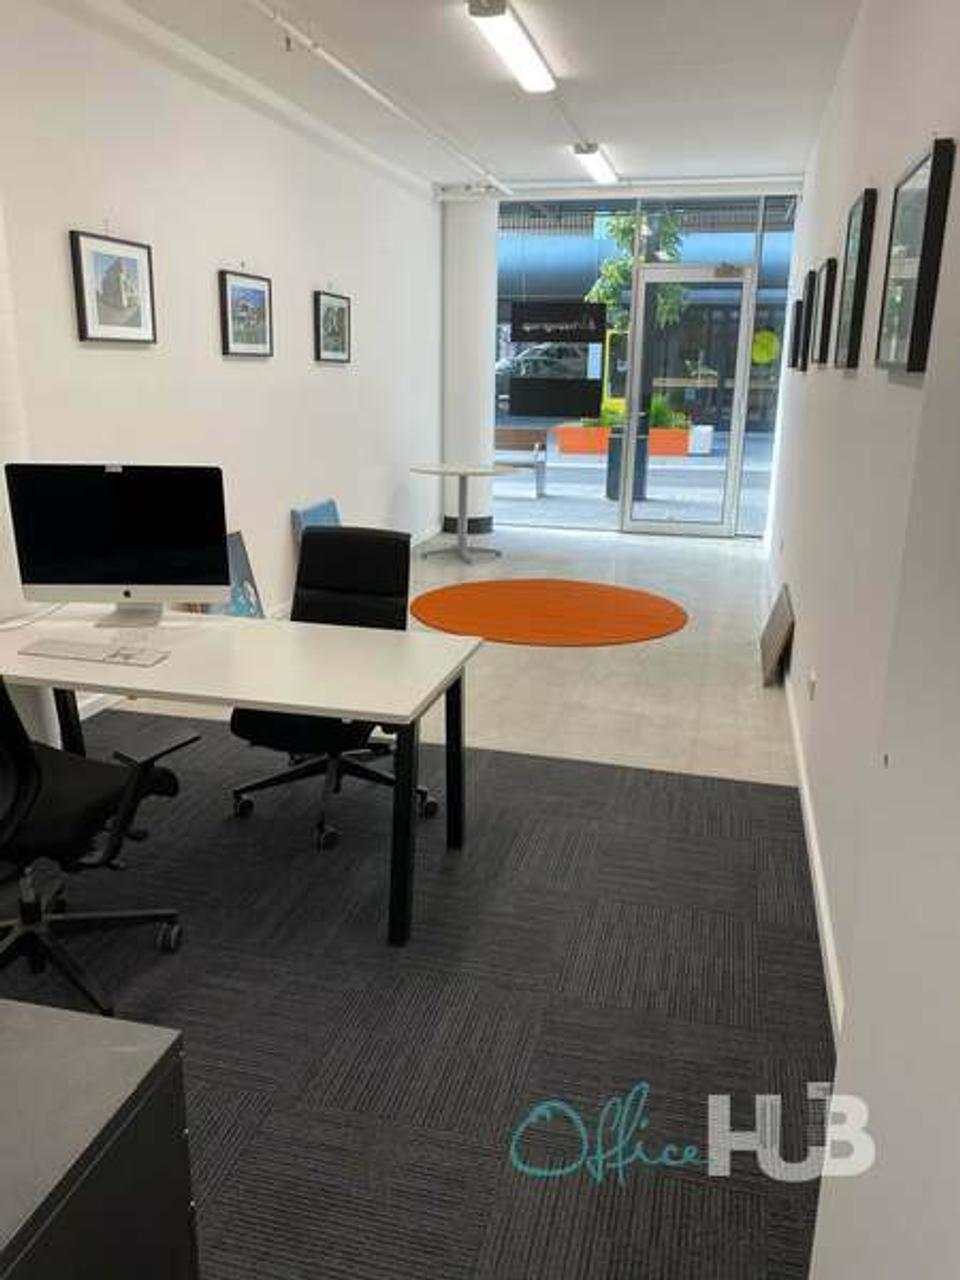 3 Person Private Office For Lease At Gheringap Street, Geelong, VIC, 3220 - image 2